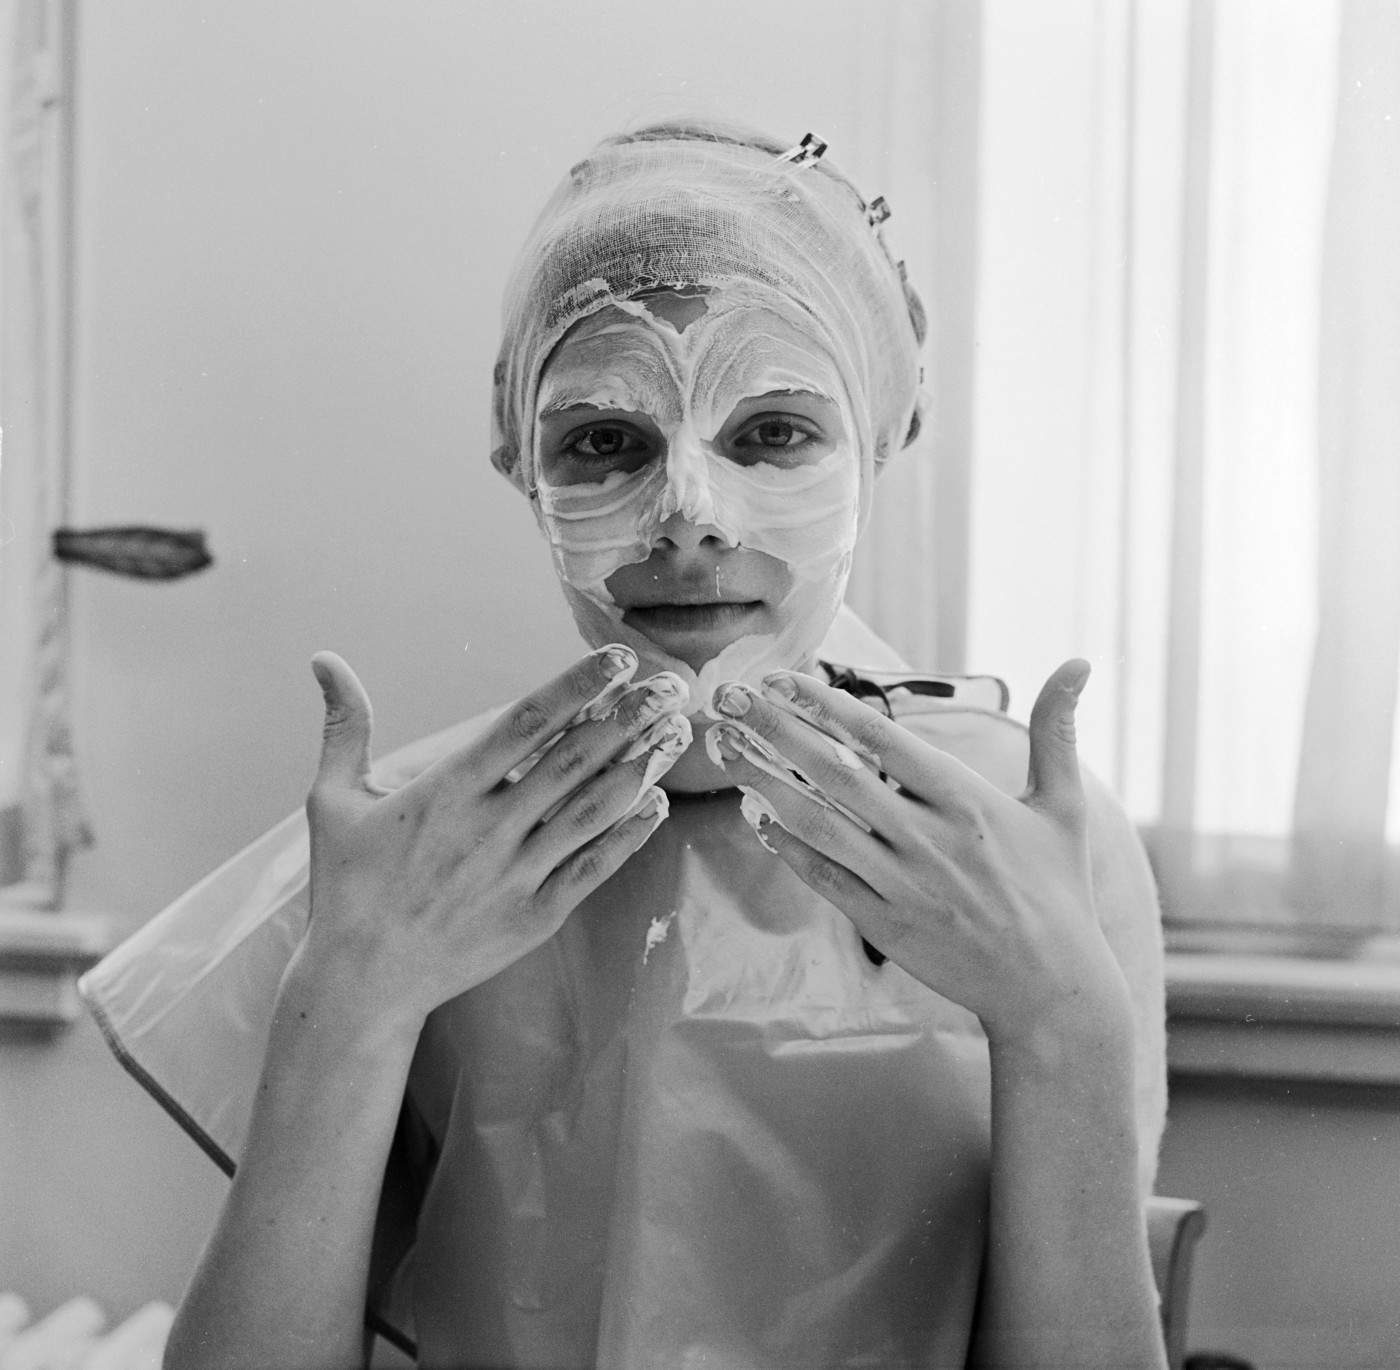 circa 1955:  A woman gently applying skin cream to her face with the tips of her fingers.  (Photo by Orlando /Three Lions/Getty Images)